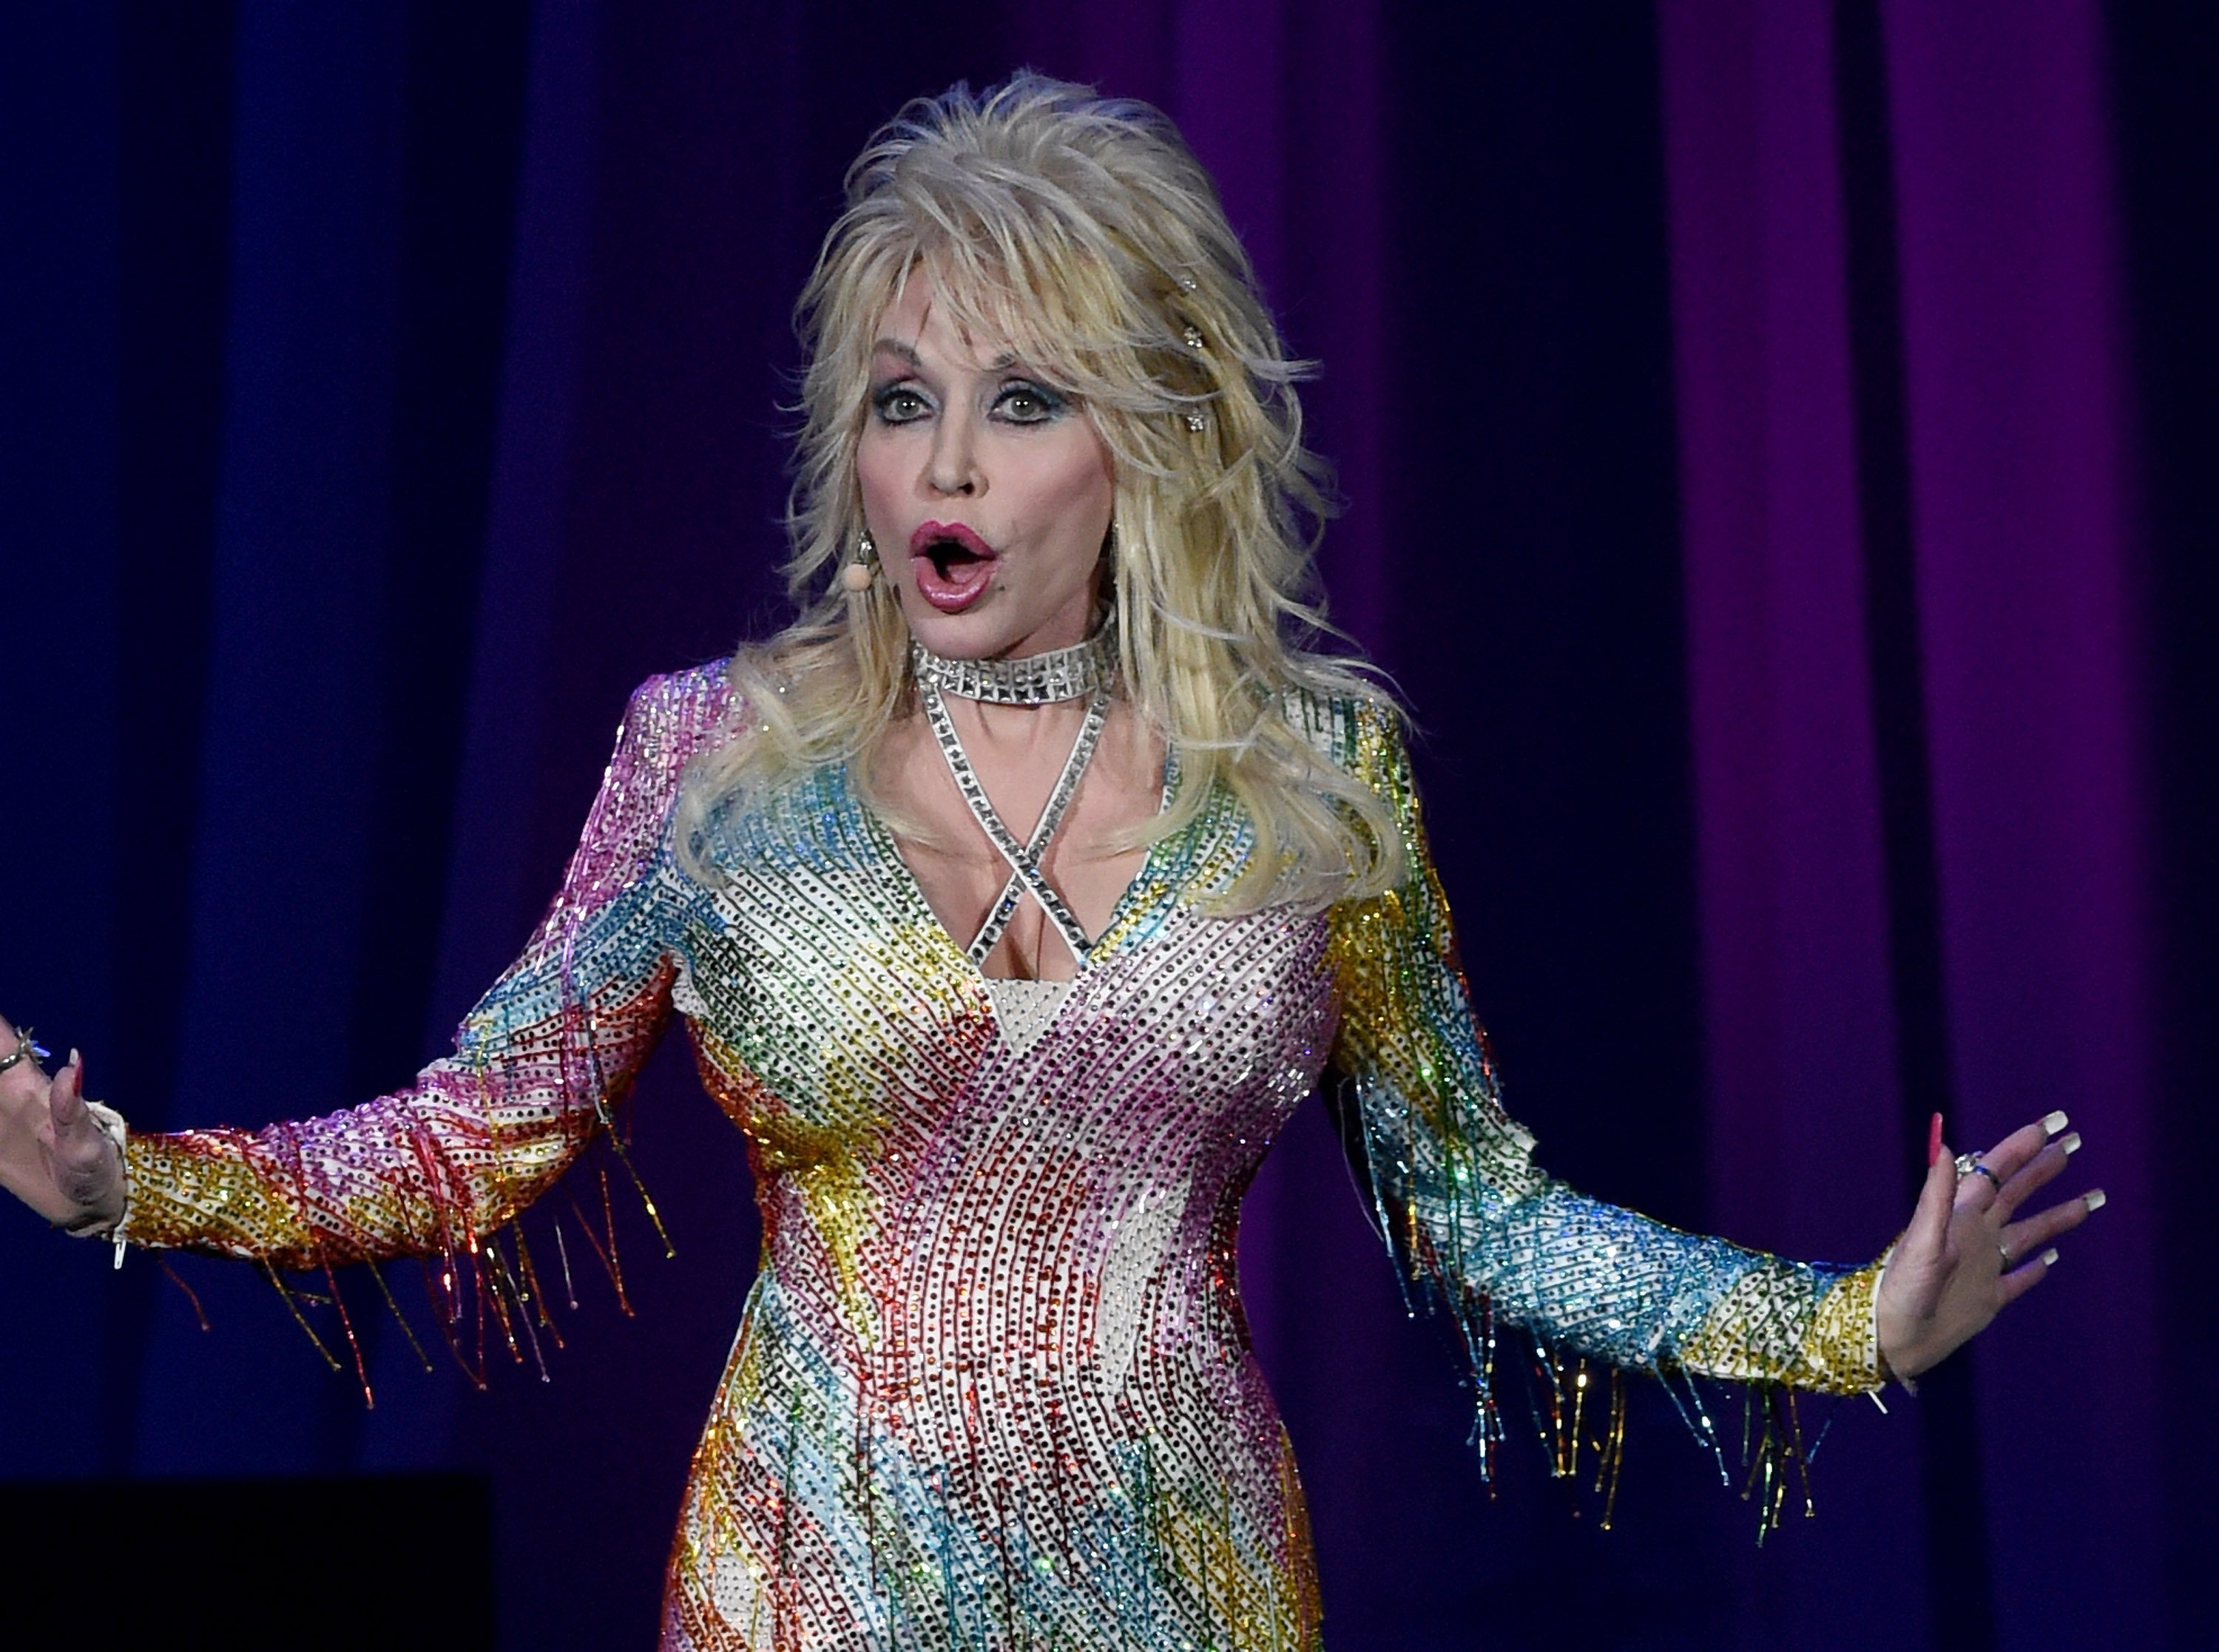 Dolly Parton attends Pure & Simple benefiting The Opry Trust Fund at Ryman Auditorium on August 1, 2015 in Nashville, Tennessee. | Photo: Getty Images.